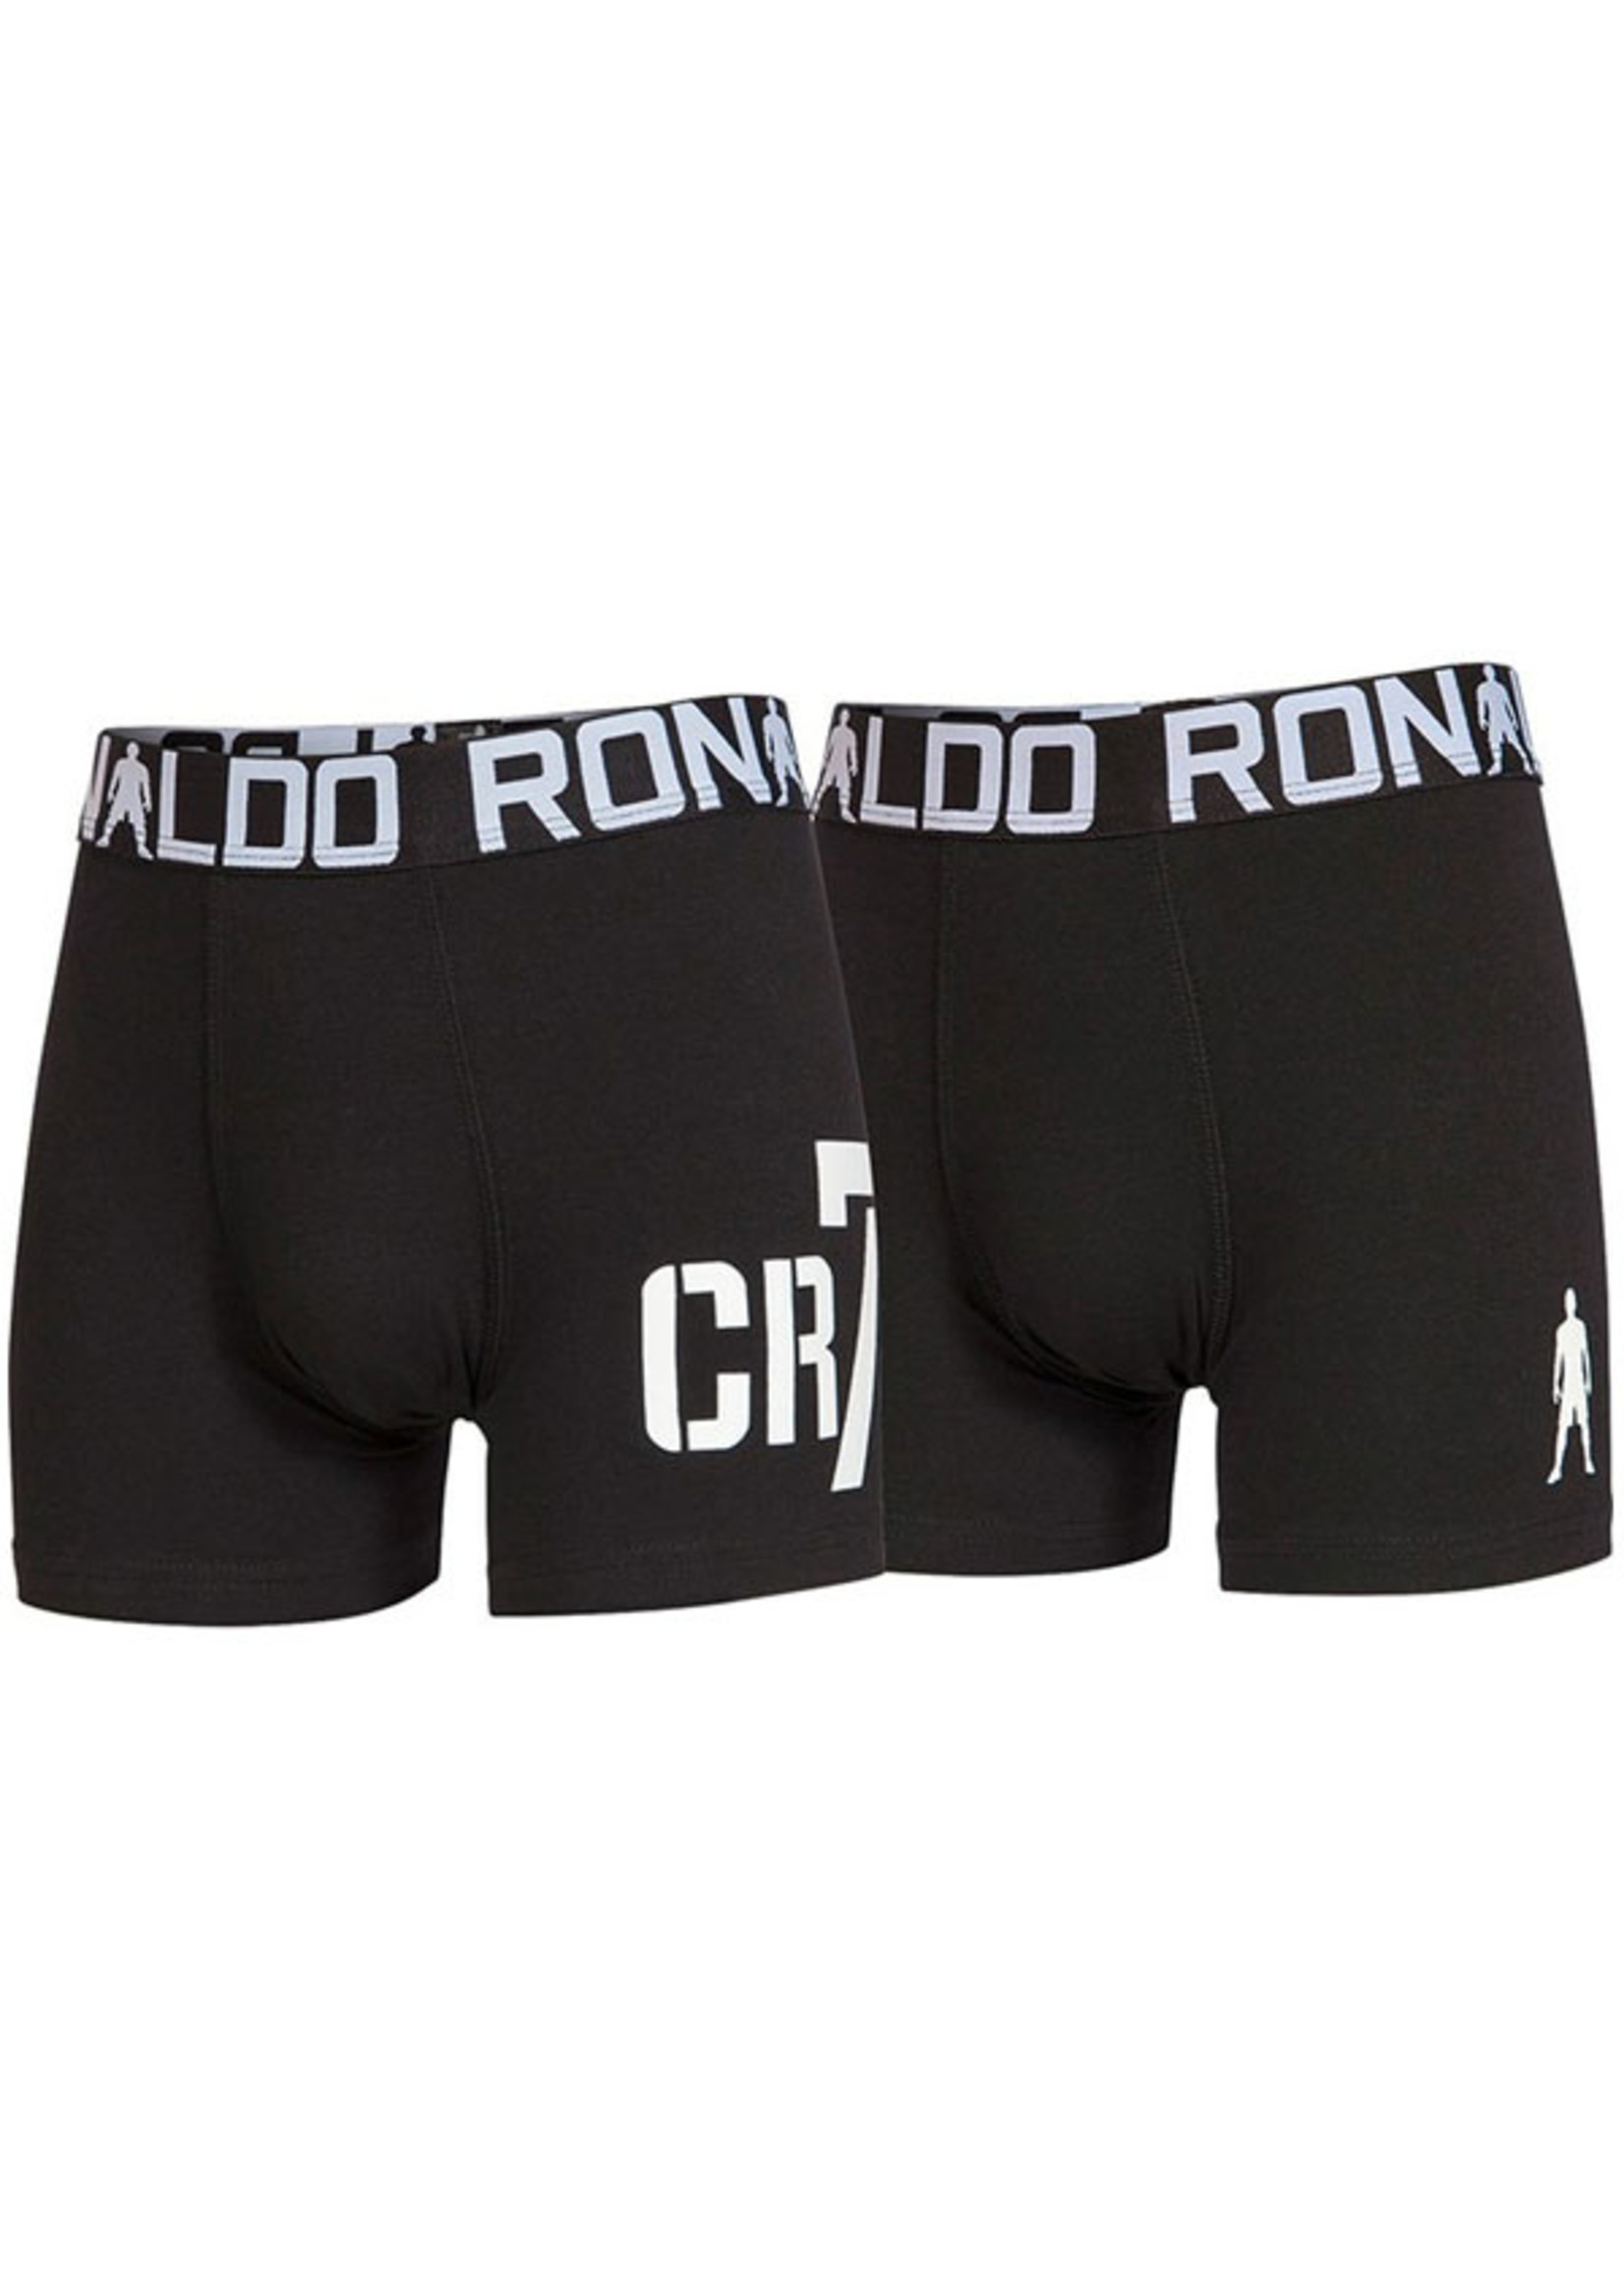 CR7 Boxer Underwear - 2 pack